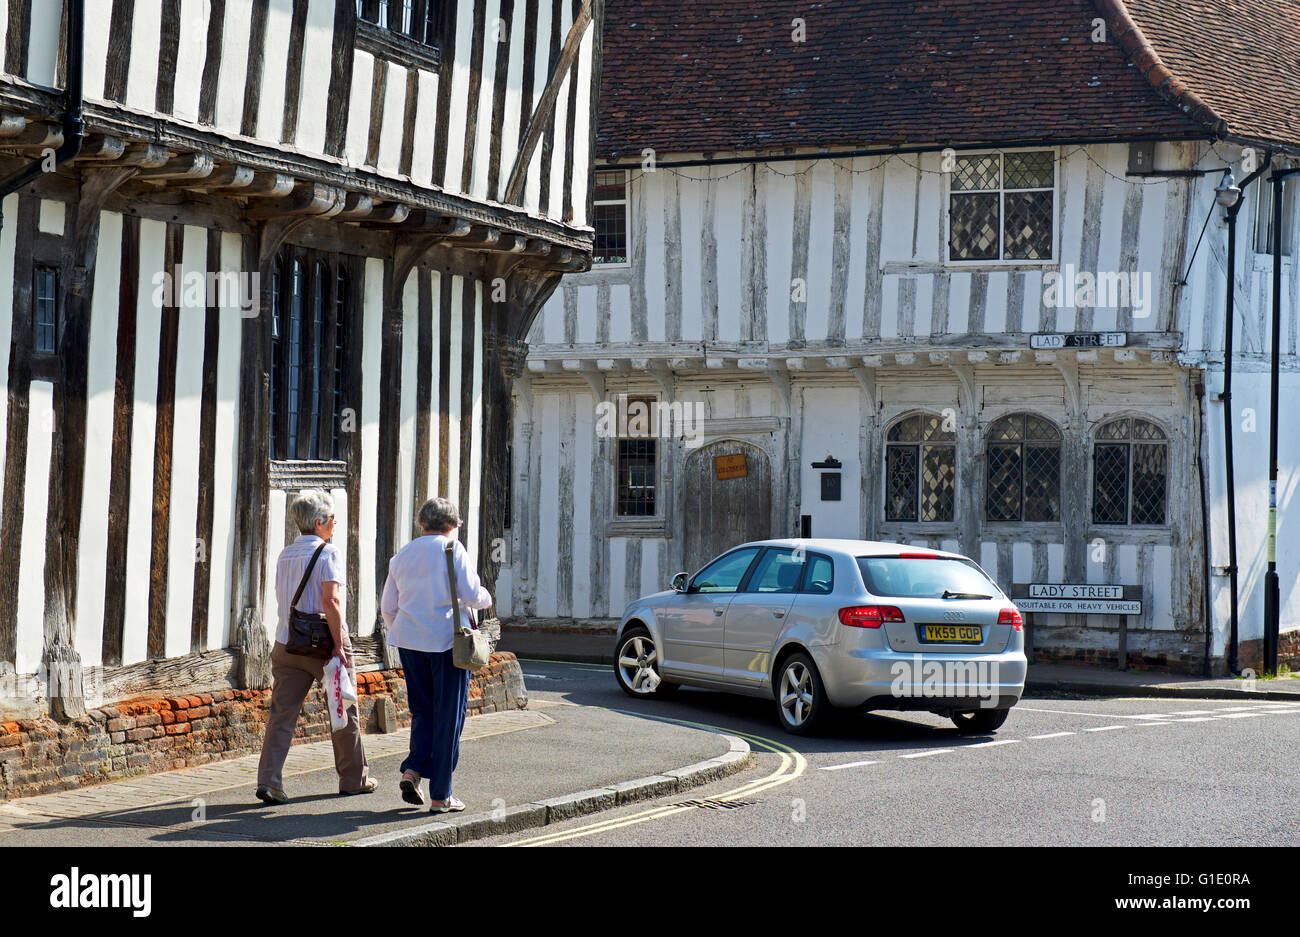 Two women walking past half-timbered buildings in the village of Lavenham, Suffolk, England UK - Stock Image